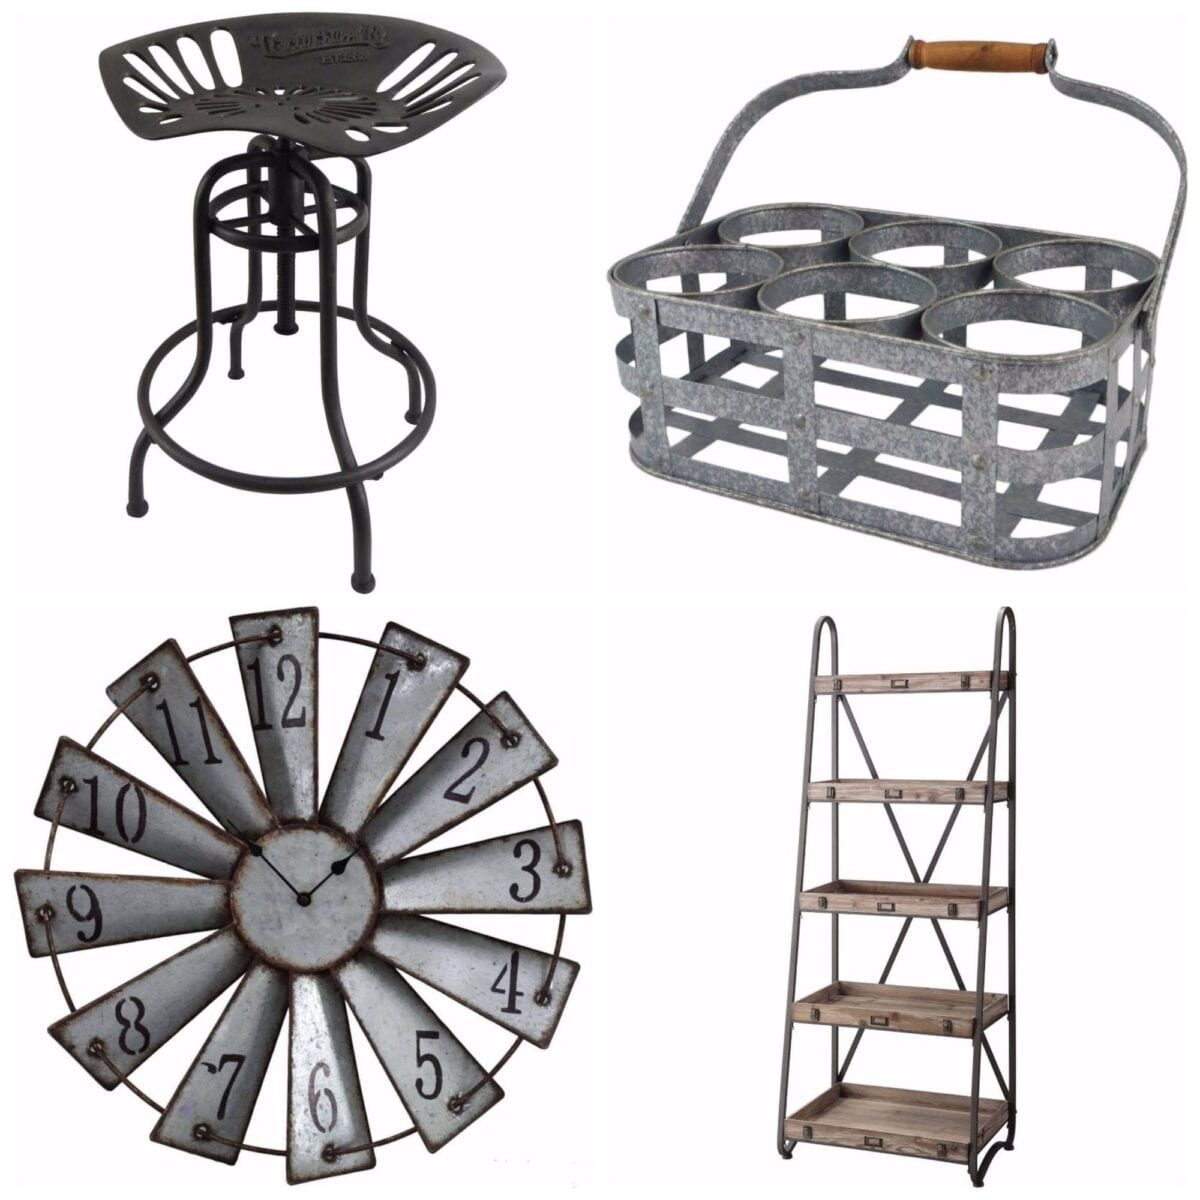 Where to buy affordable industrial farmhouse decor bless for Where to buy home decor